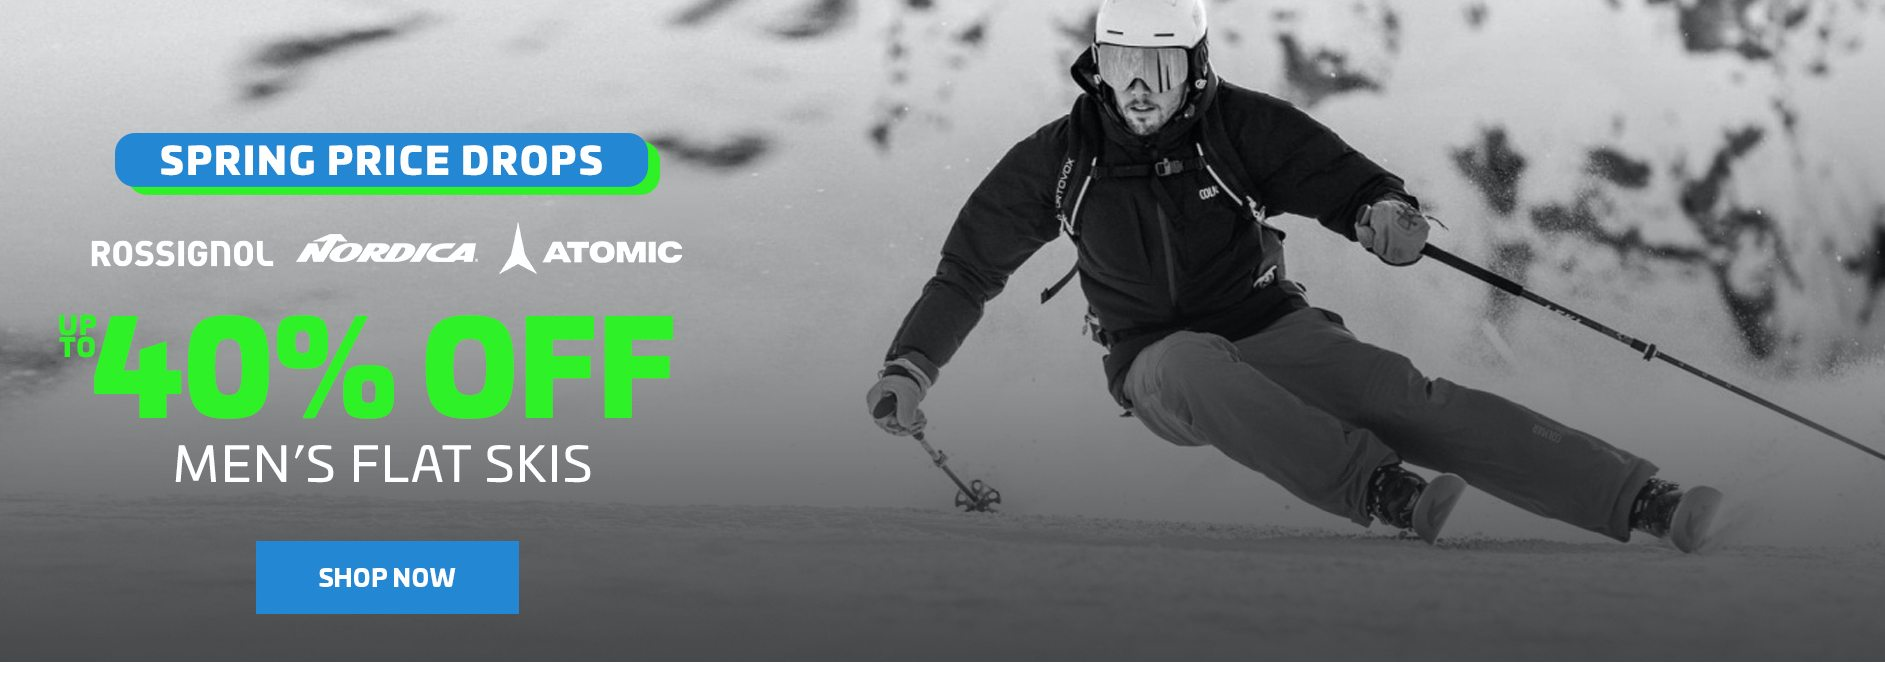 UP TO 40% OFF MEN'S FLAT SKIS - FOOTER